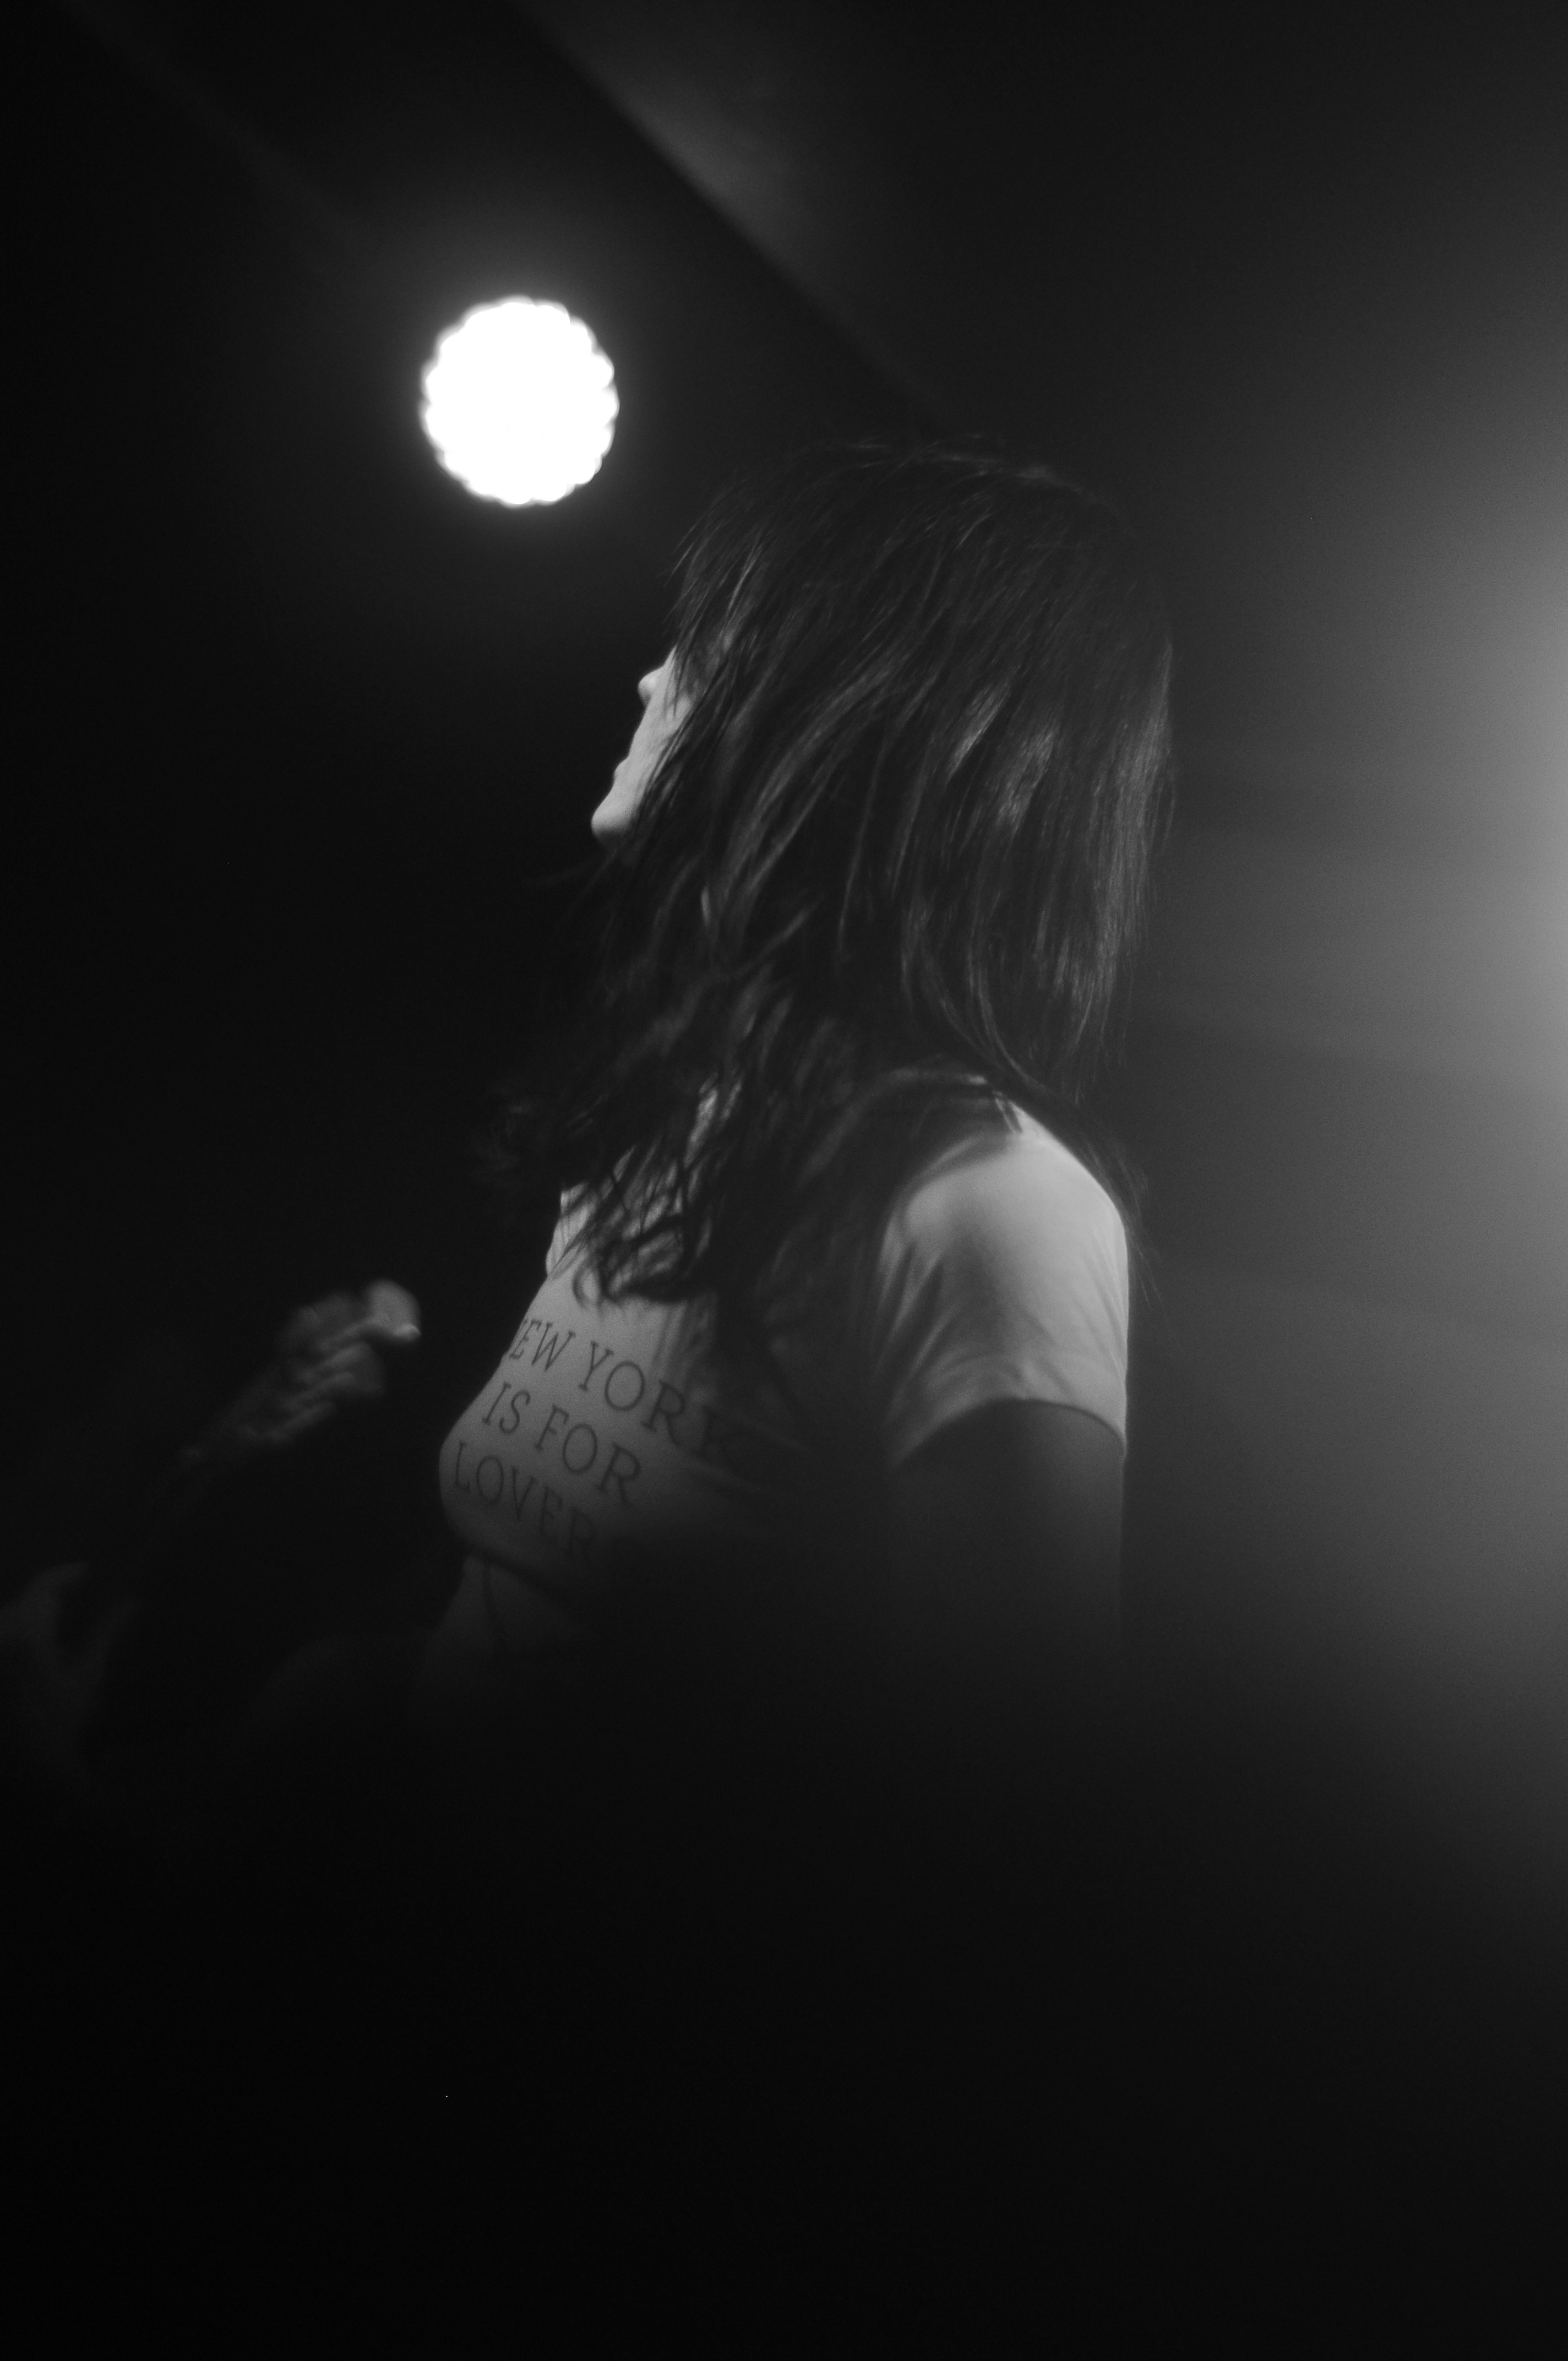 thecoffeetographer_thepreatures_cmj_music_smdlr_10